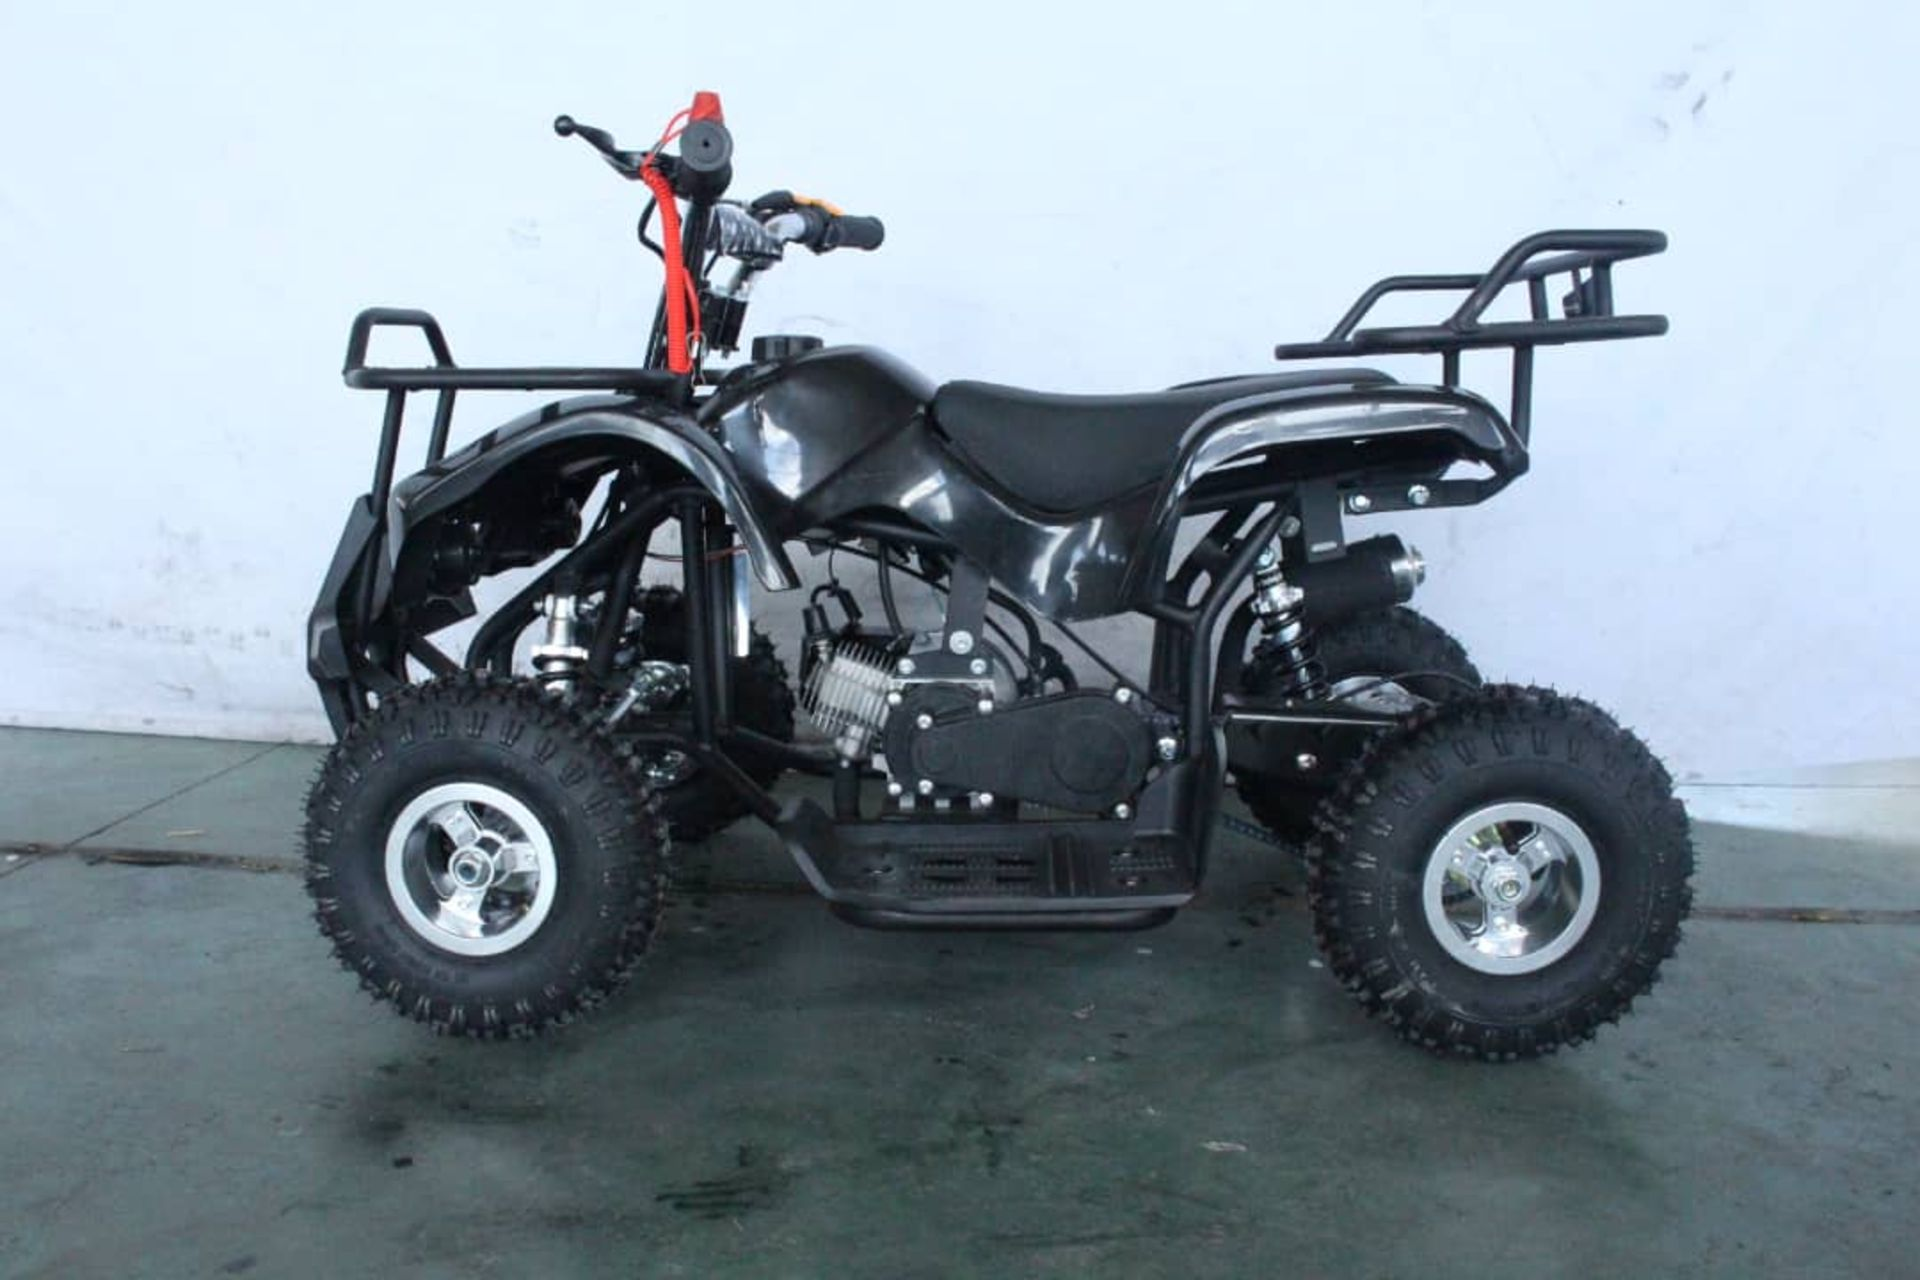 + VAT Brand New 50cc Mini Quad Bike FRM - Colours May Vary - Picture May Vary From Actual Item - Image 5 of 9